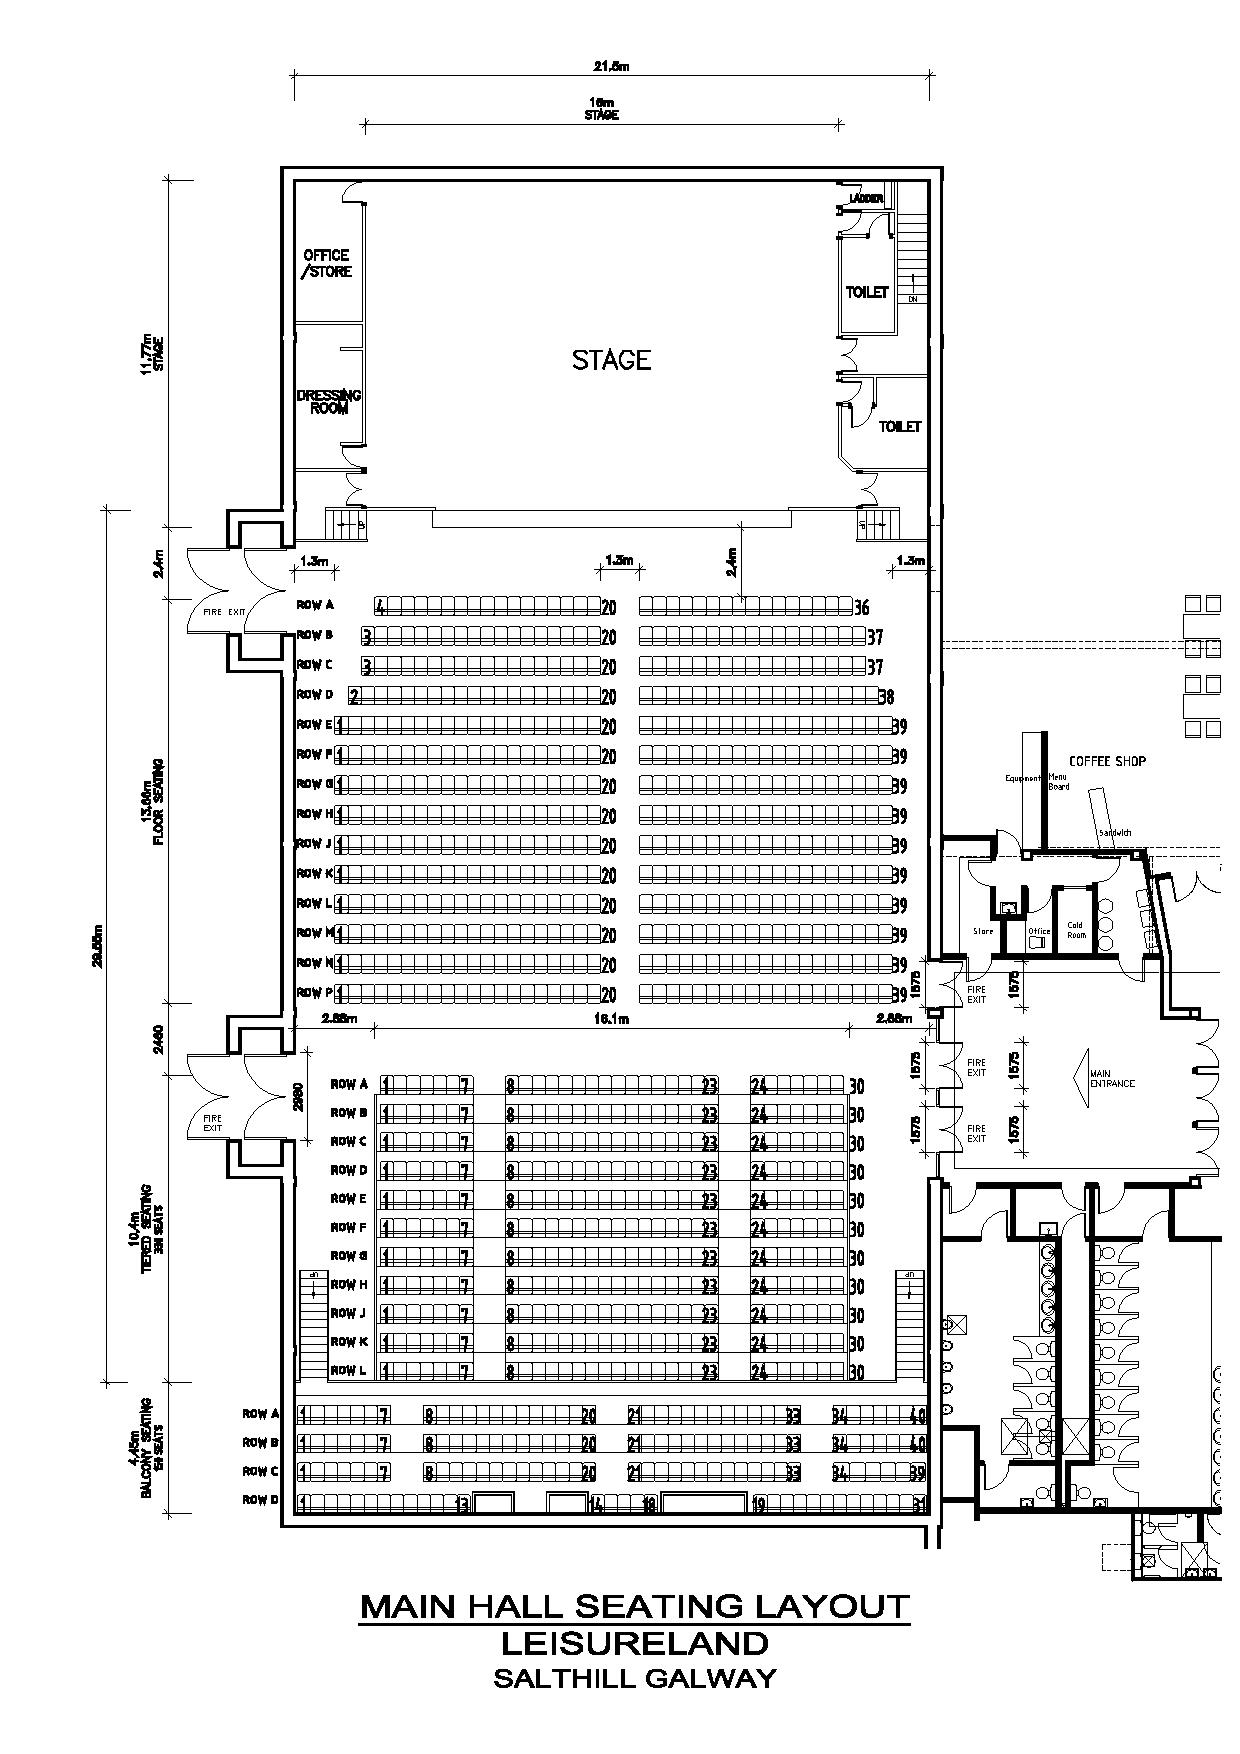 Leisureland hall layout new-page-001